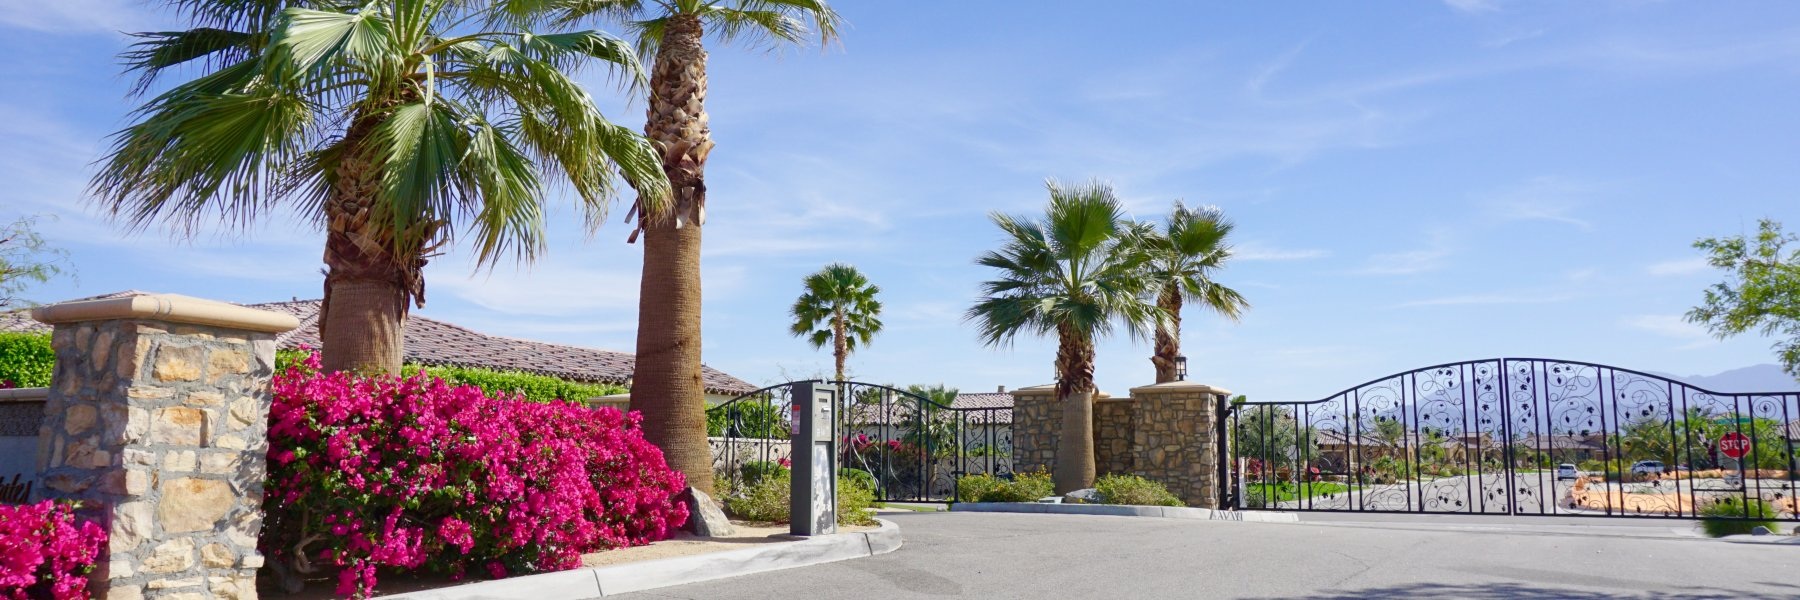 Madison Estates is a community of homes in Indio California